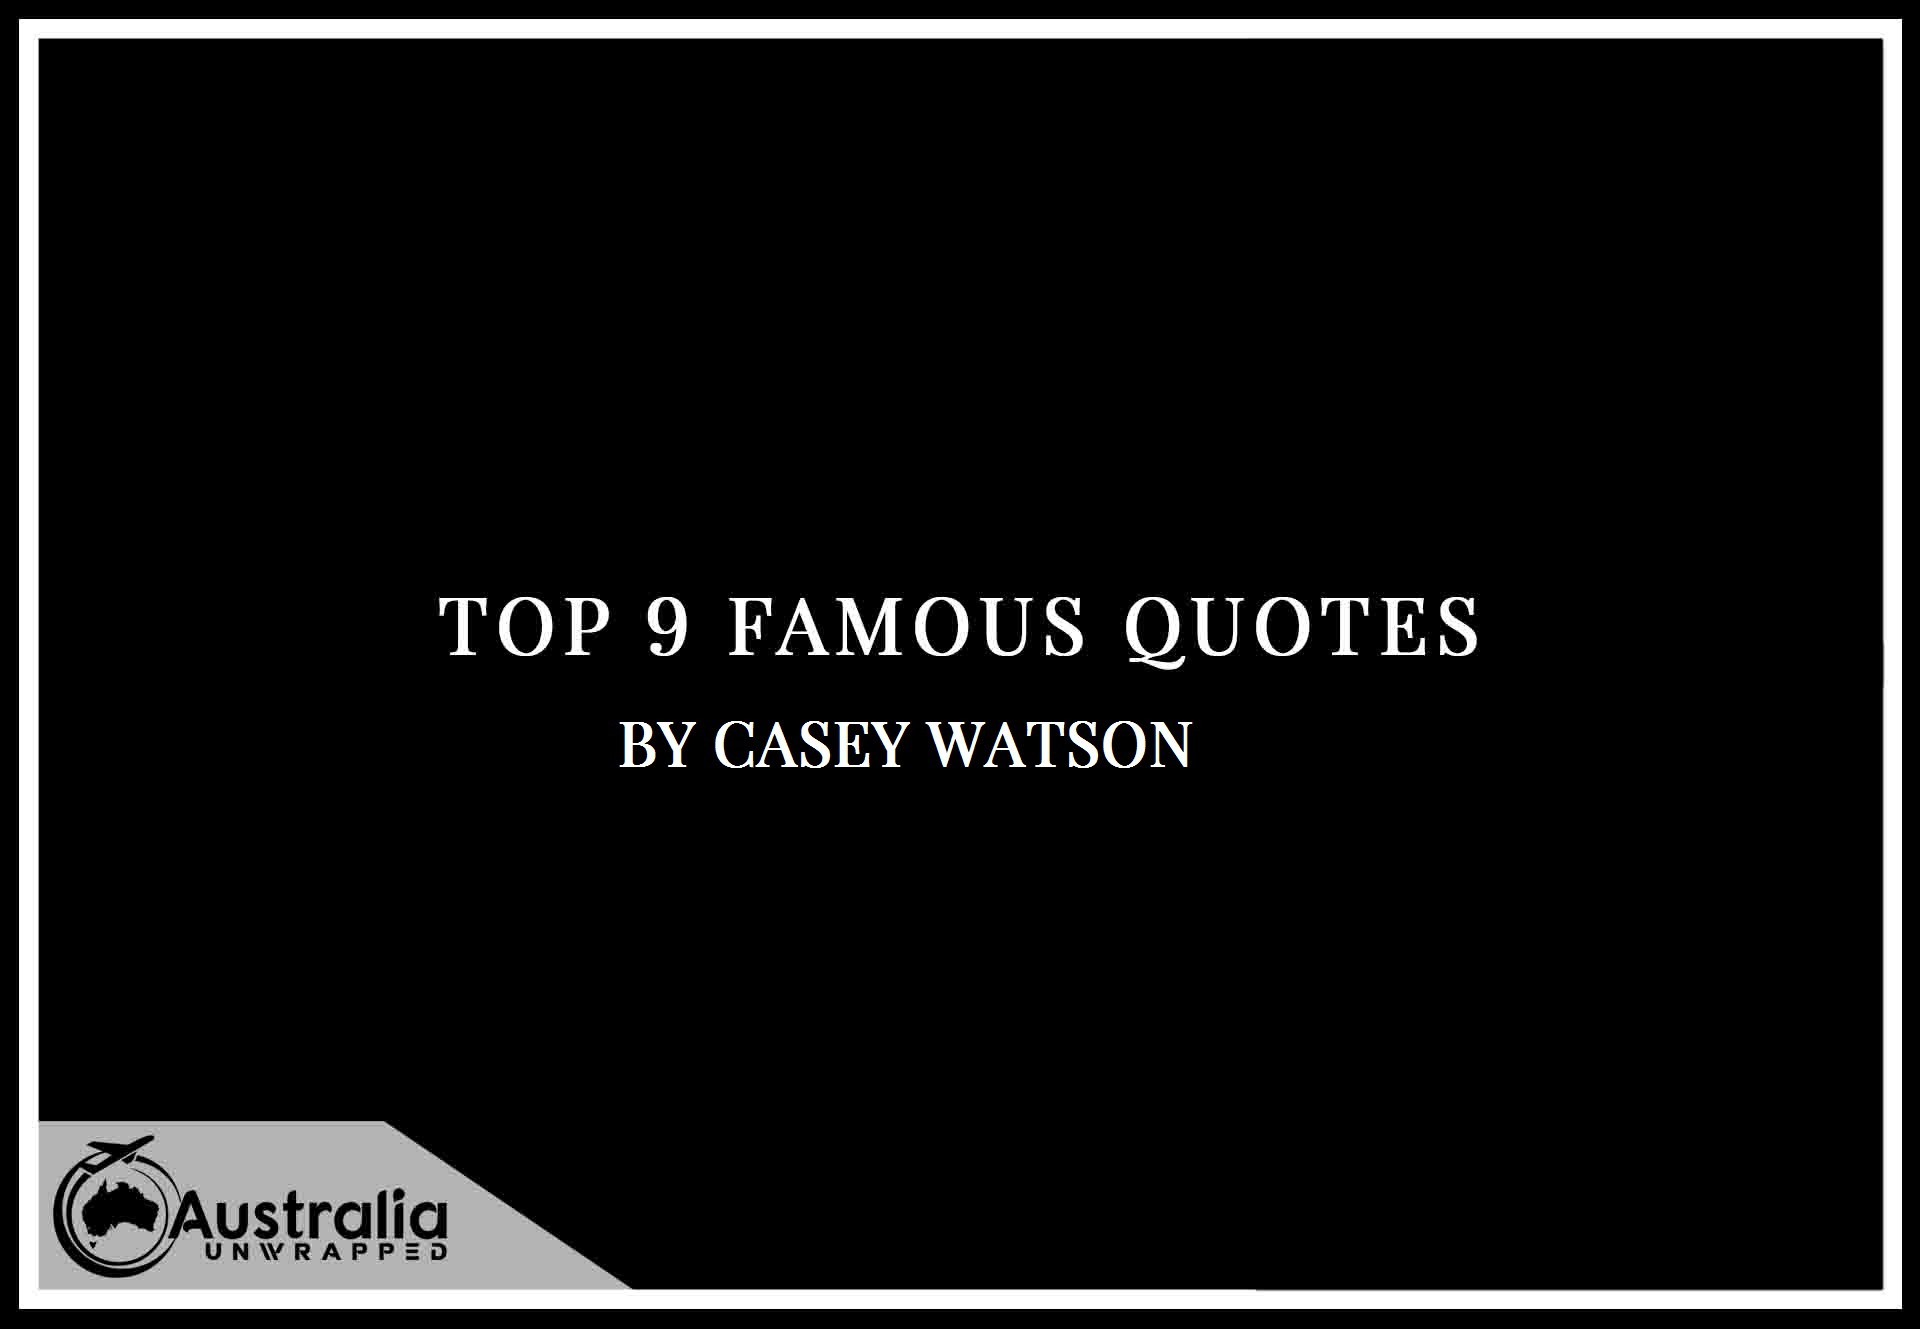 Casey Watson's Top 9 Popular and Famous Quotes